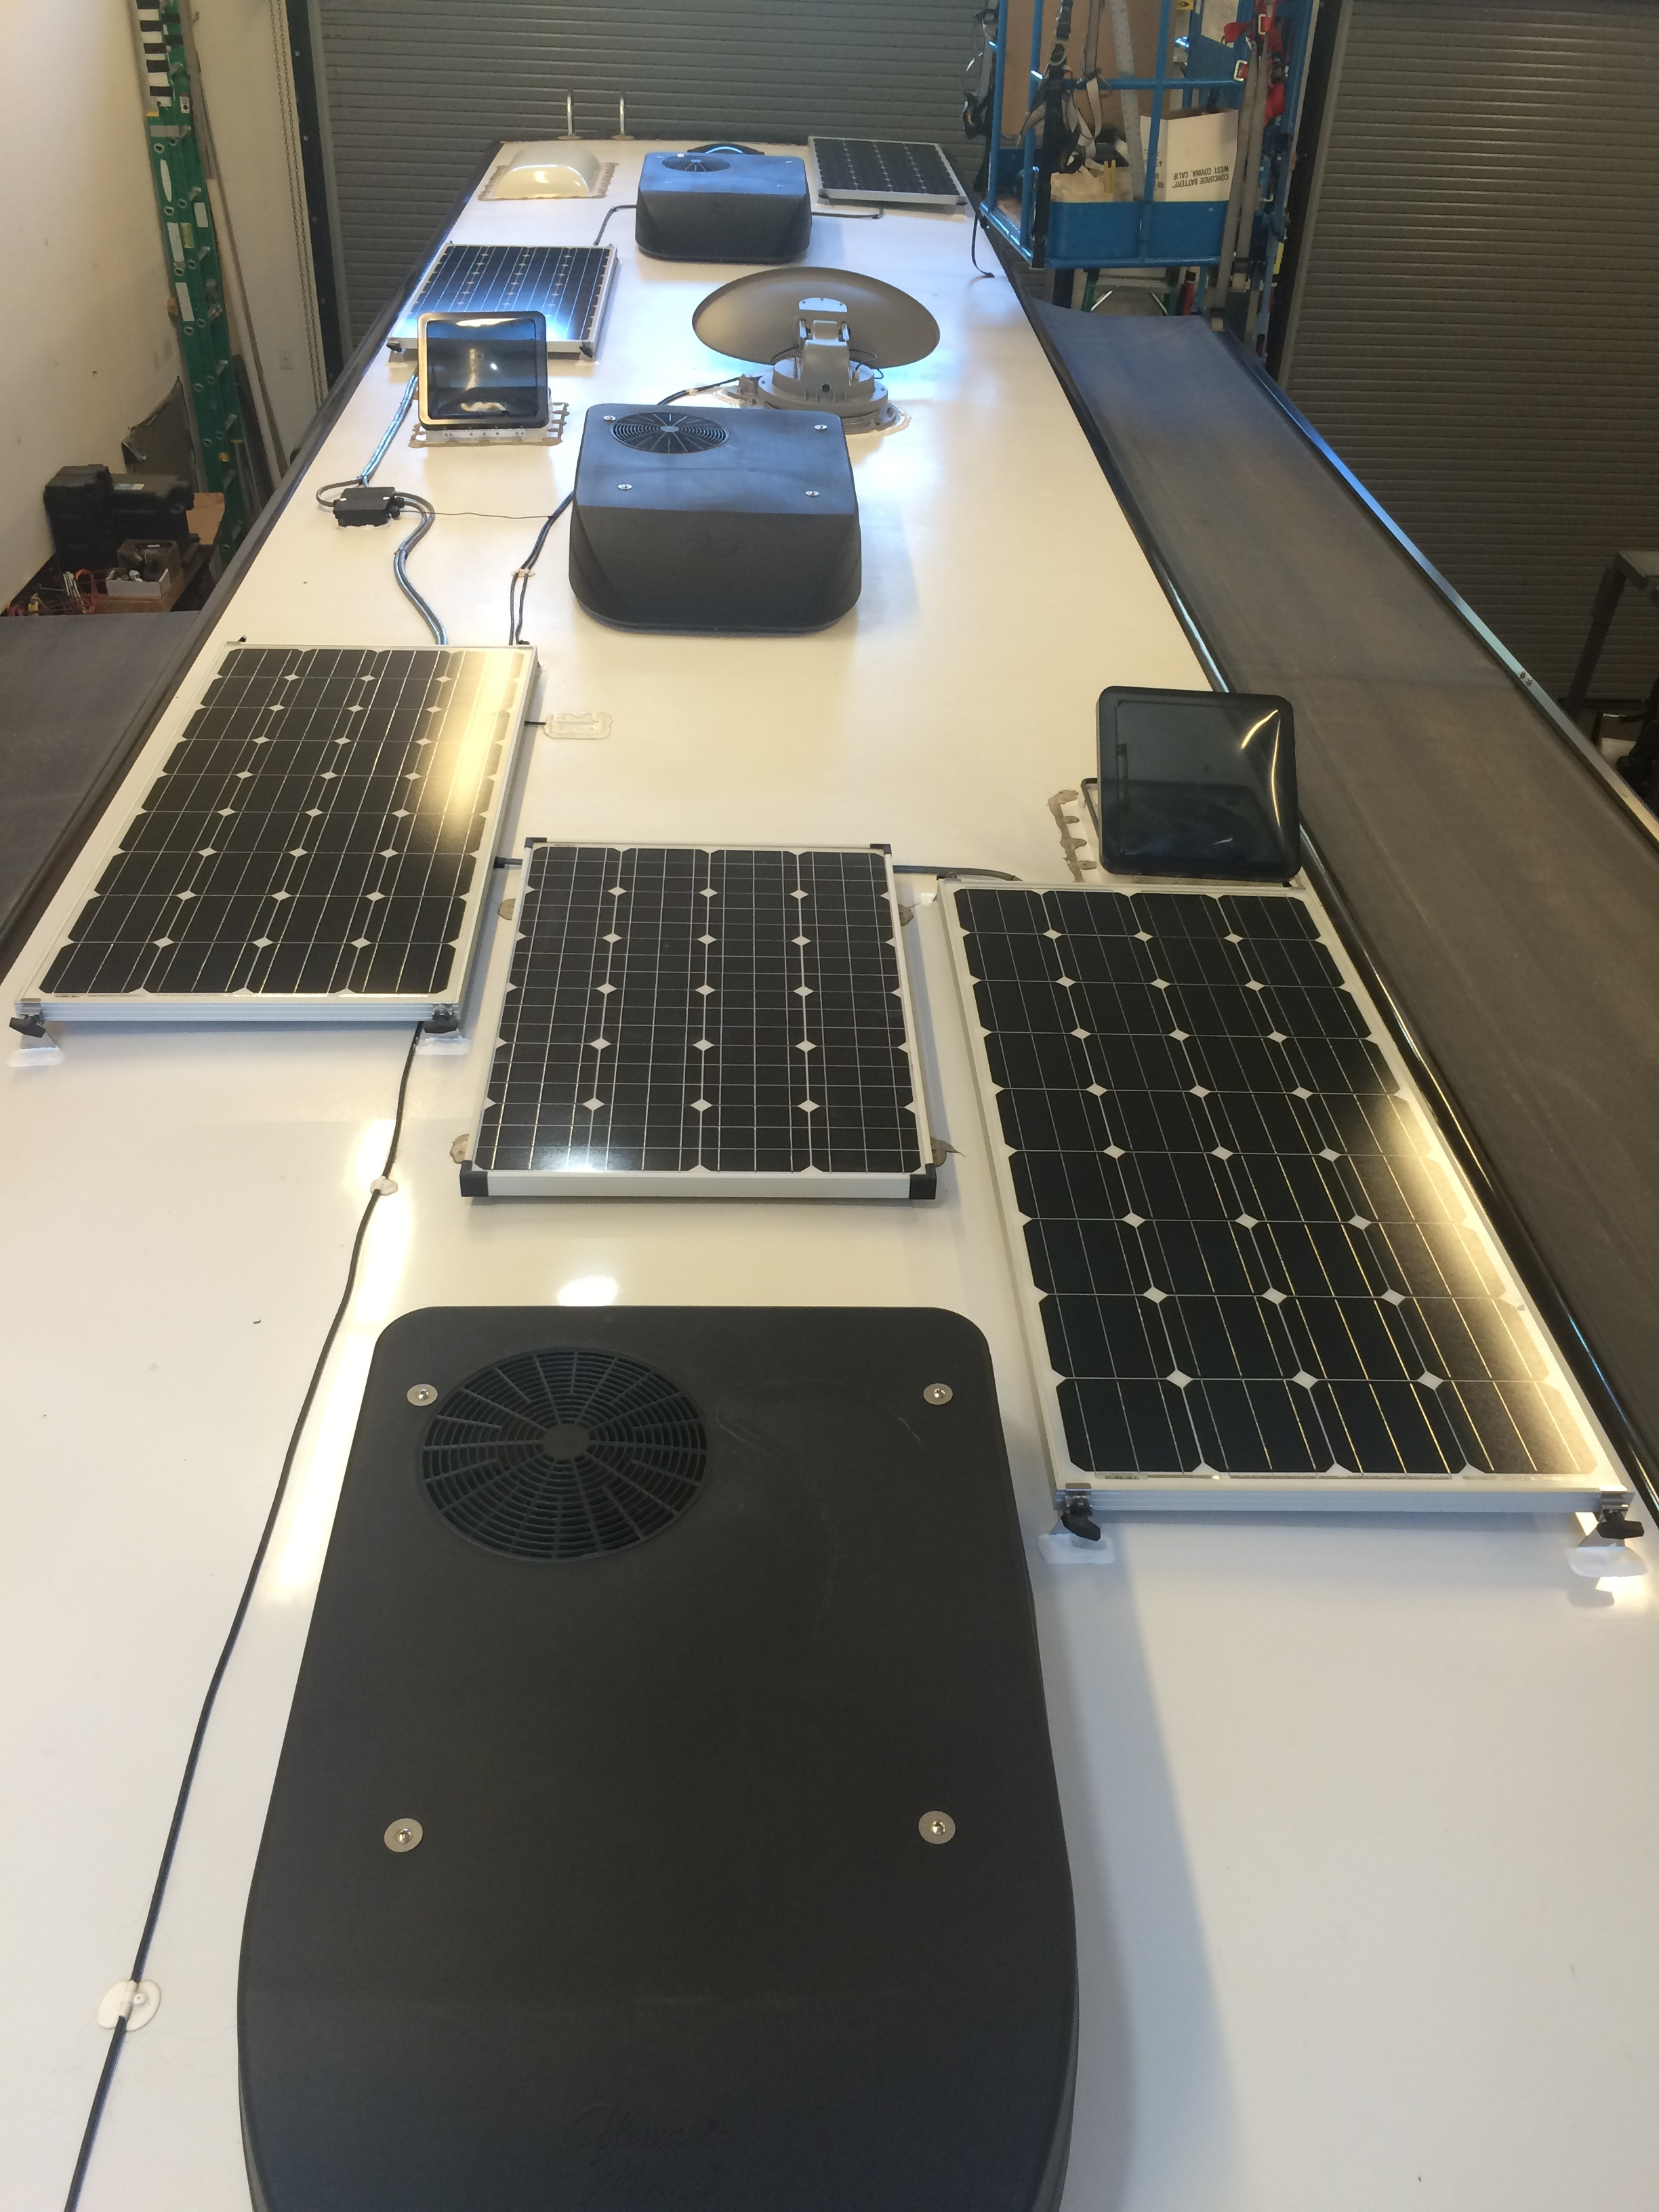 Four AM Solar Panels and one factory panel